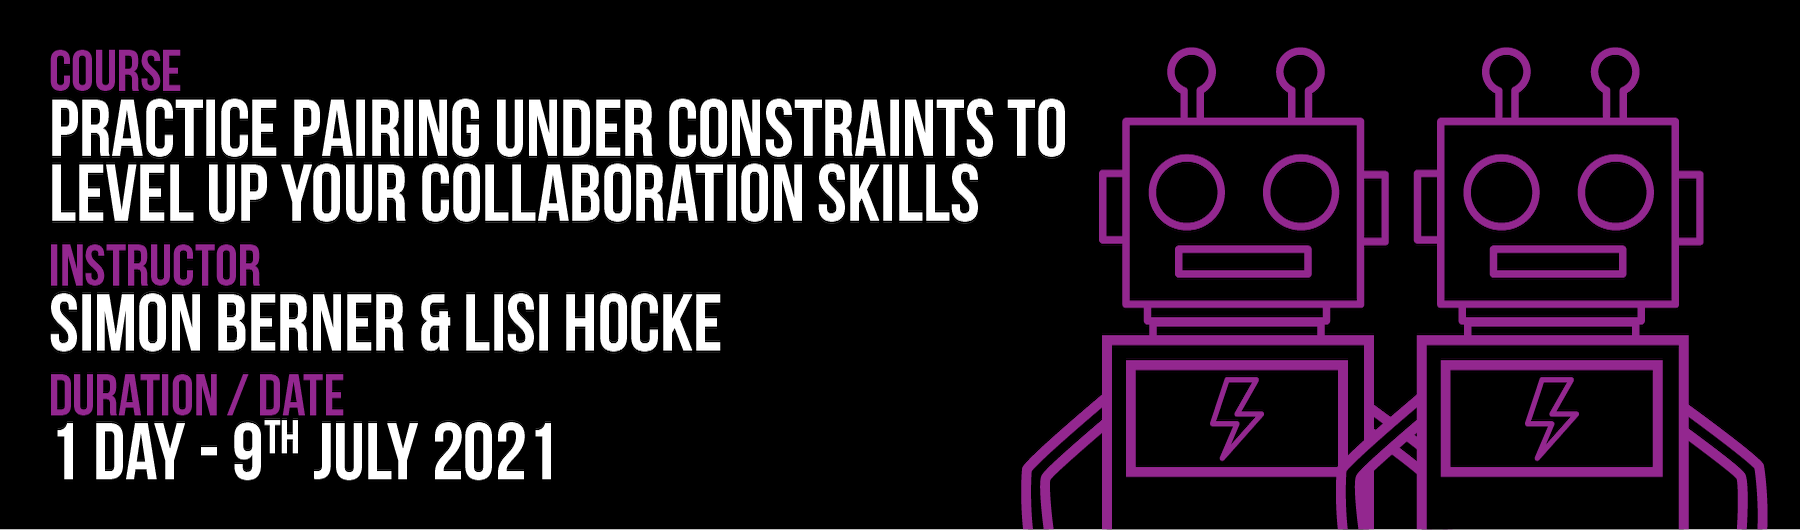 Practice Pairing Under Constraints to Level Up Your Collaboration Skills - July 2021